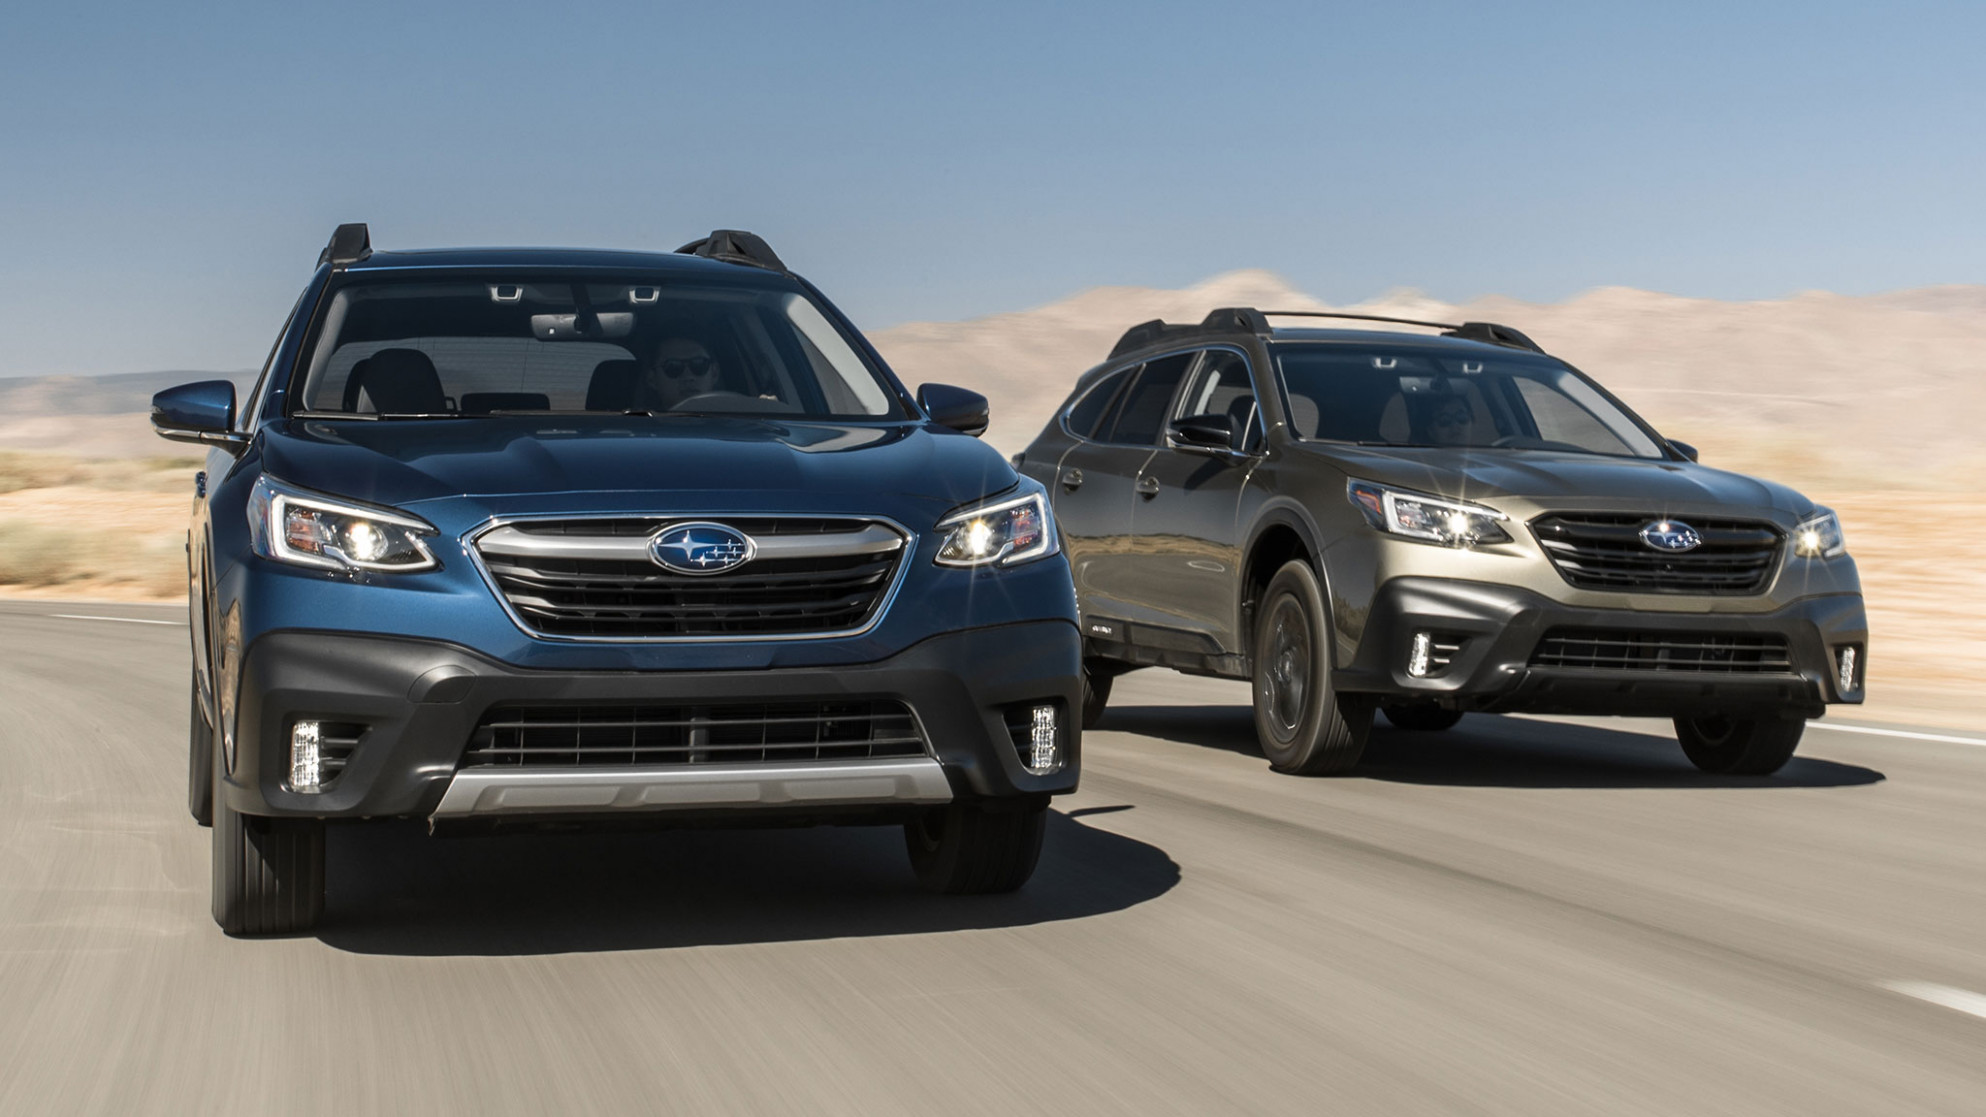 7 Subaru Outback Trim Guide: The Features You Get Across the Lineup - subaru lineup 2020